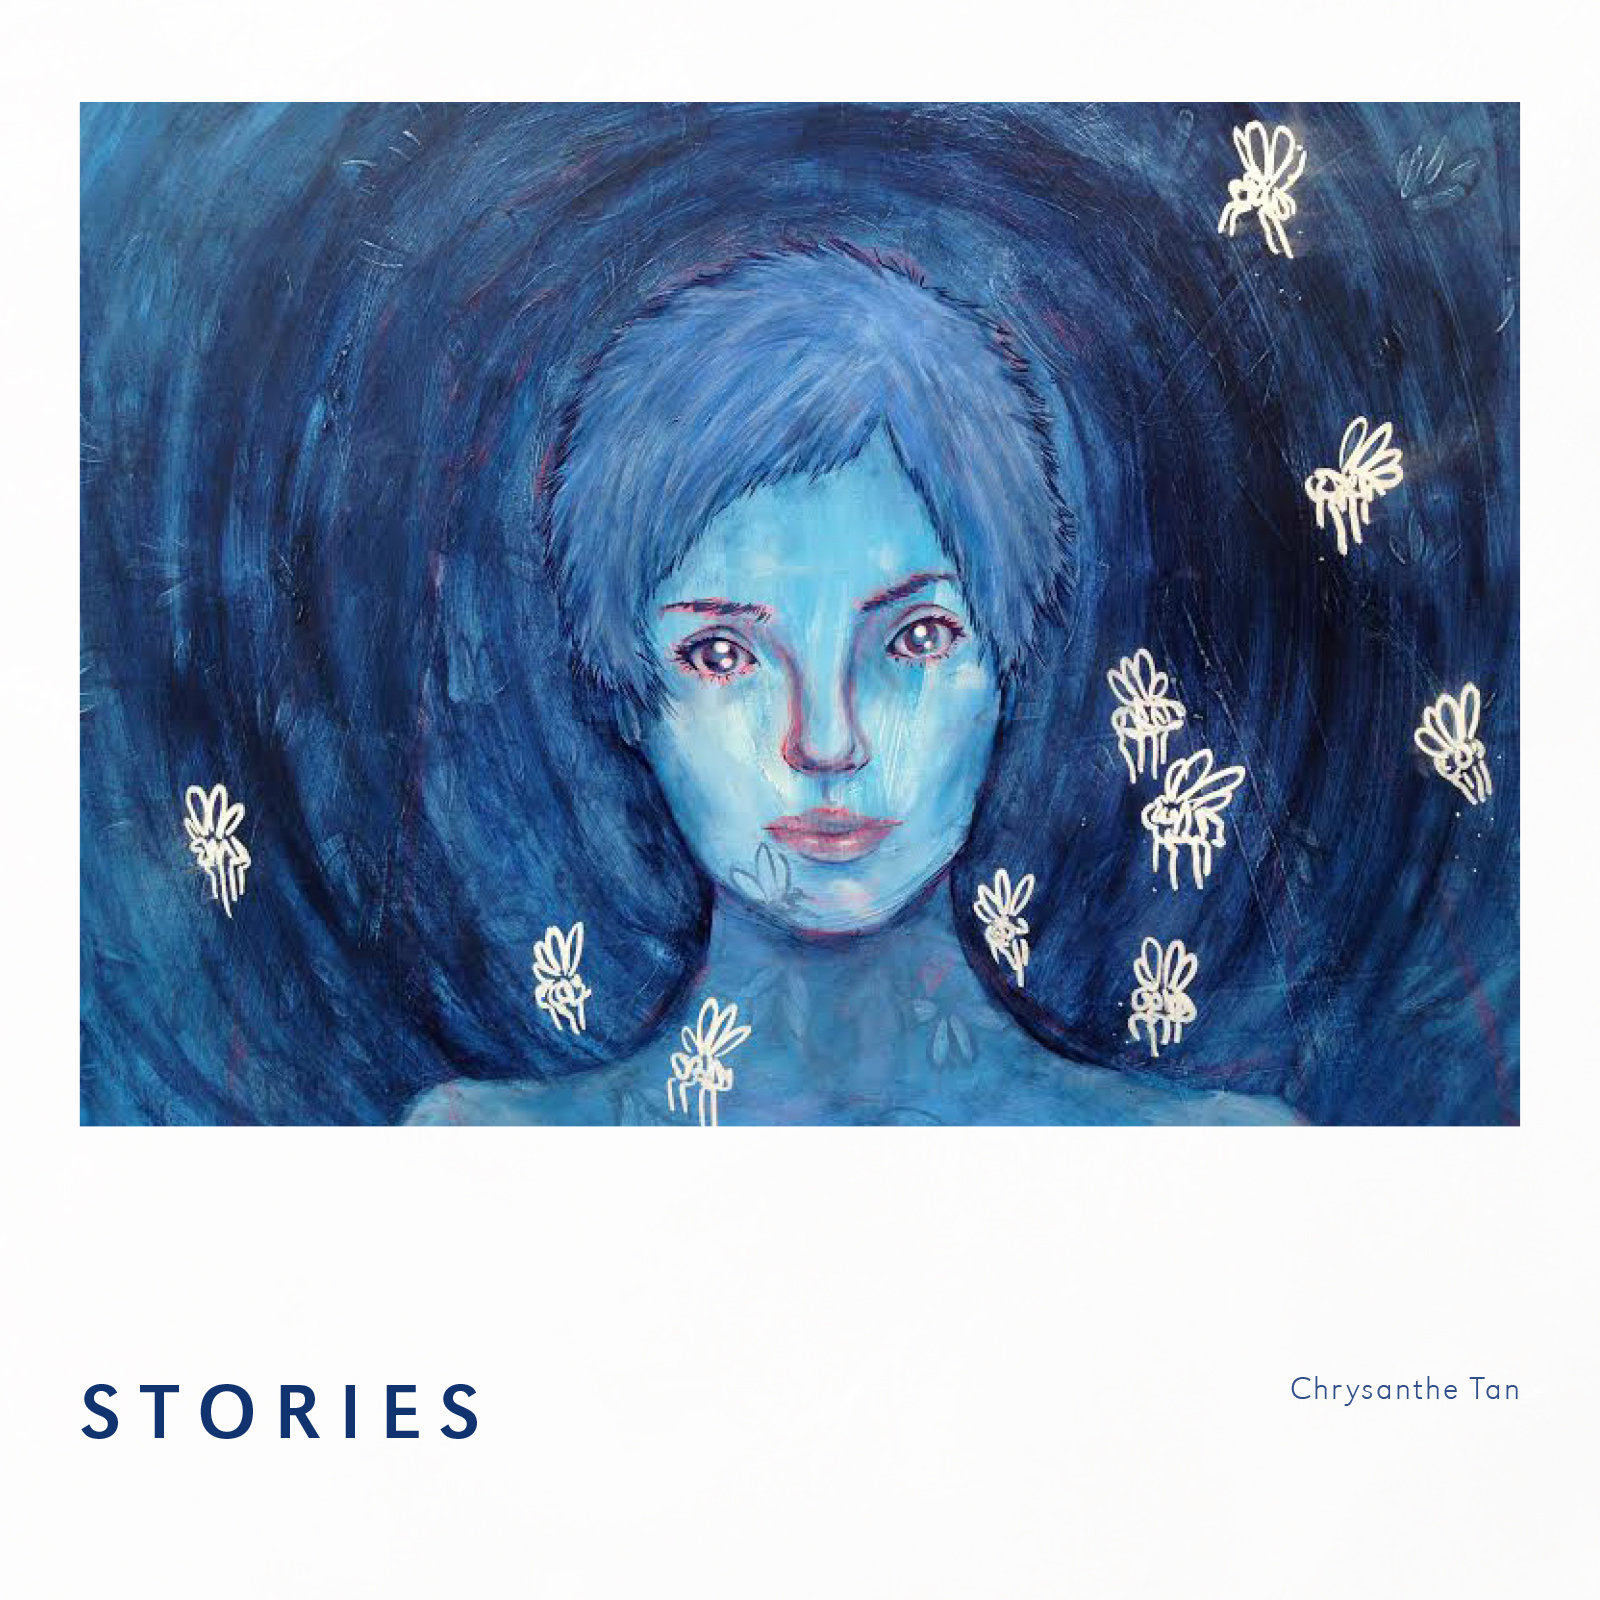 Click image to purchase   Stories  on iTunes